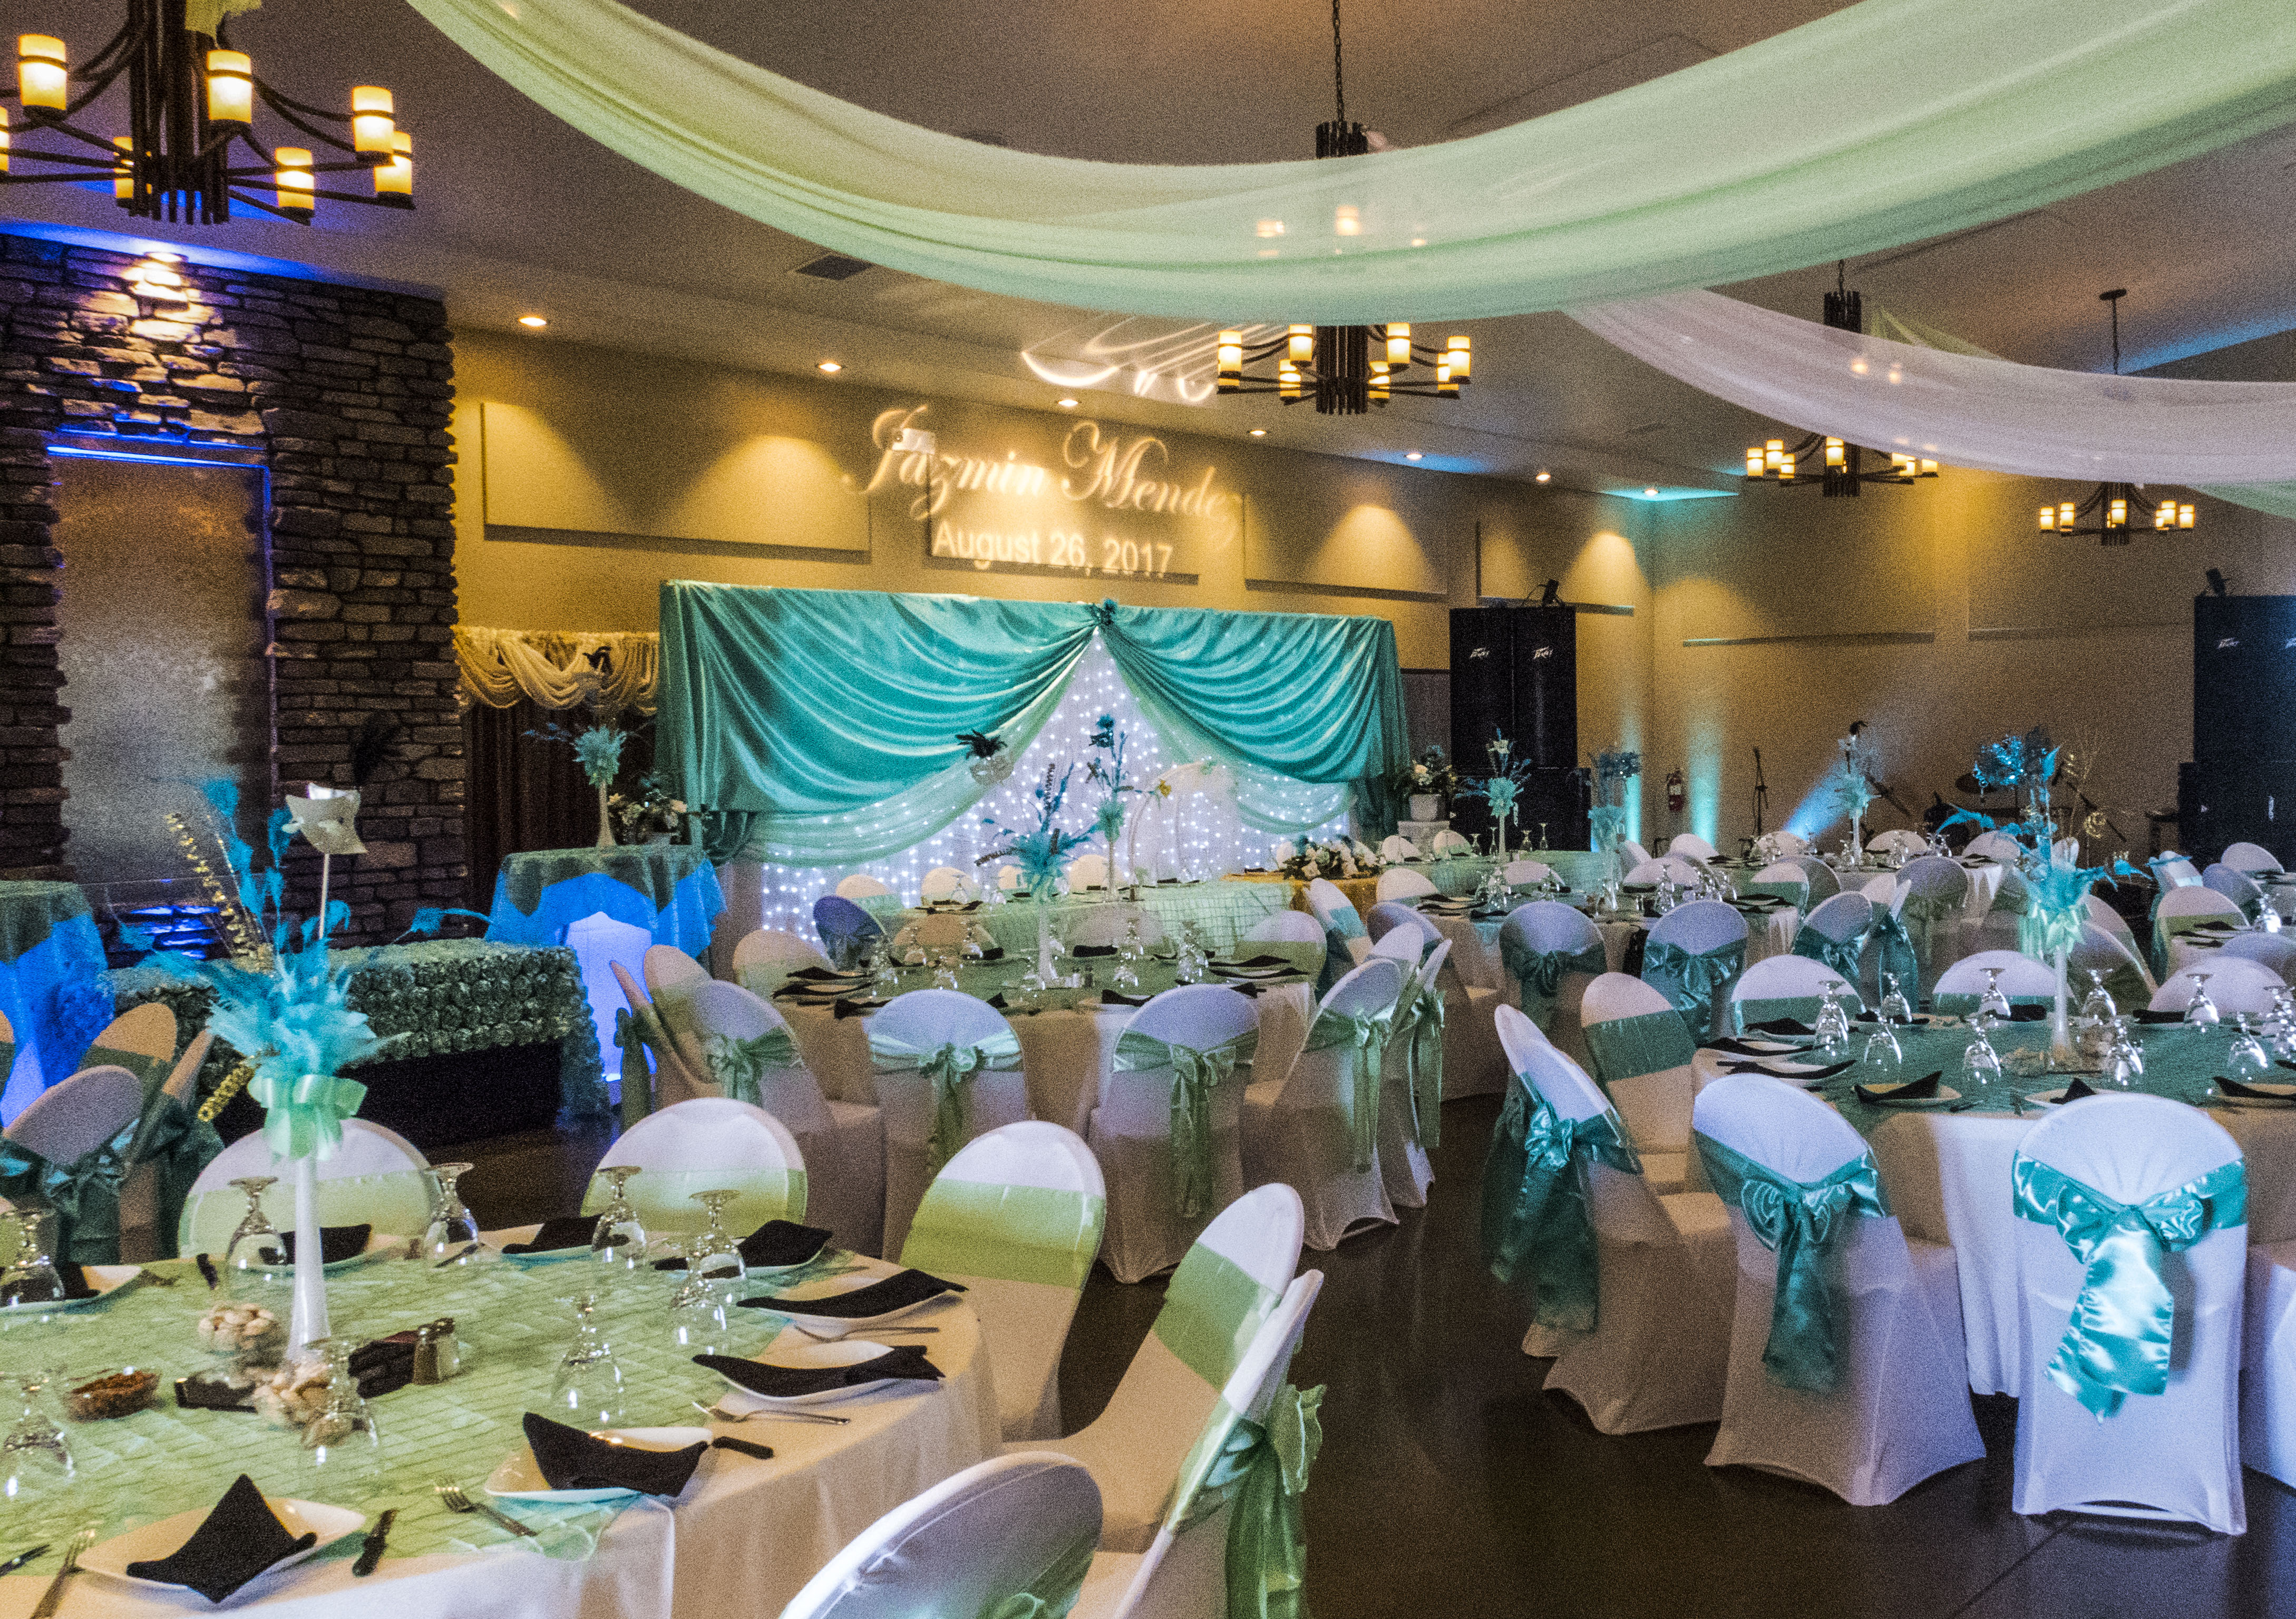 A stunning photo of the beautiful Event space at Longmeadow Event Center - Affordable Colorado Quinceañera